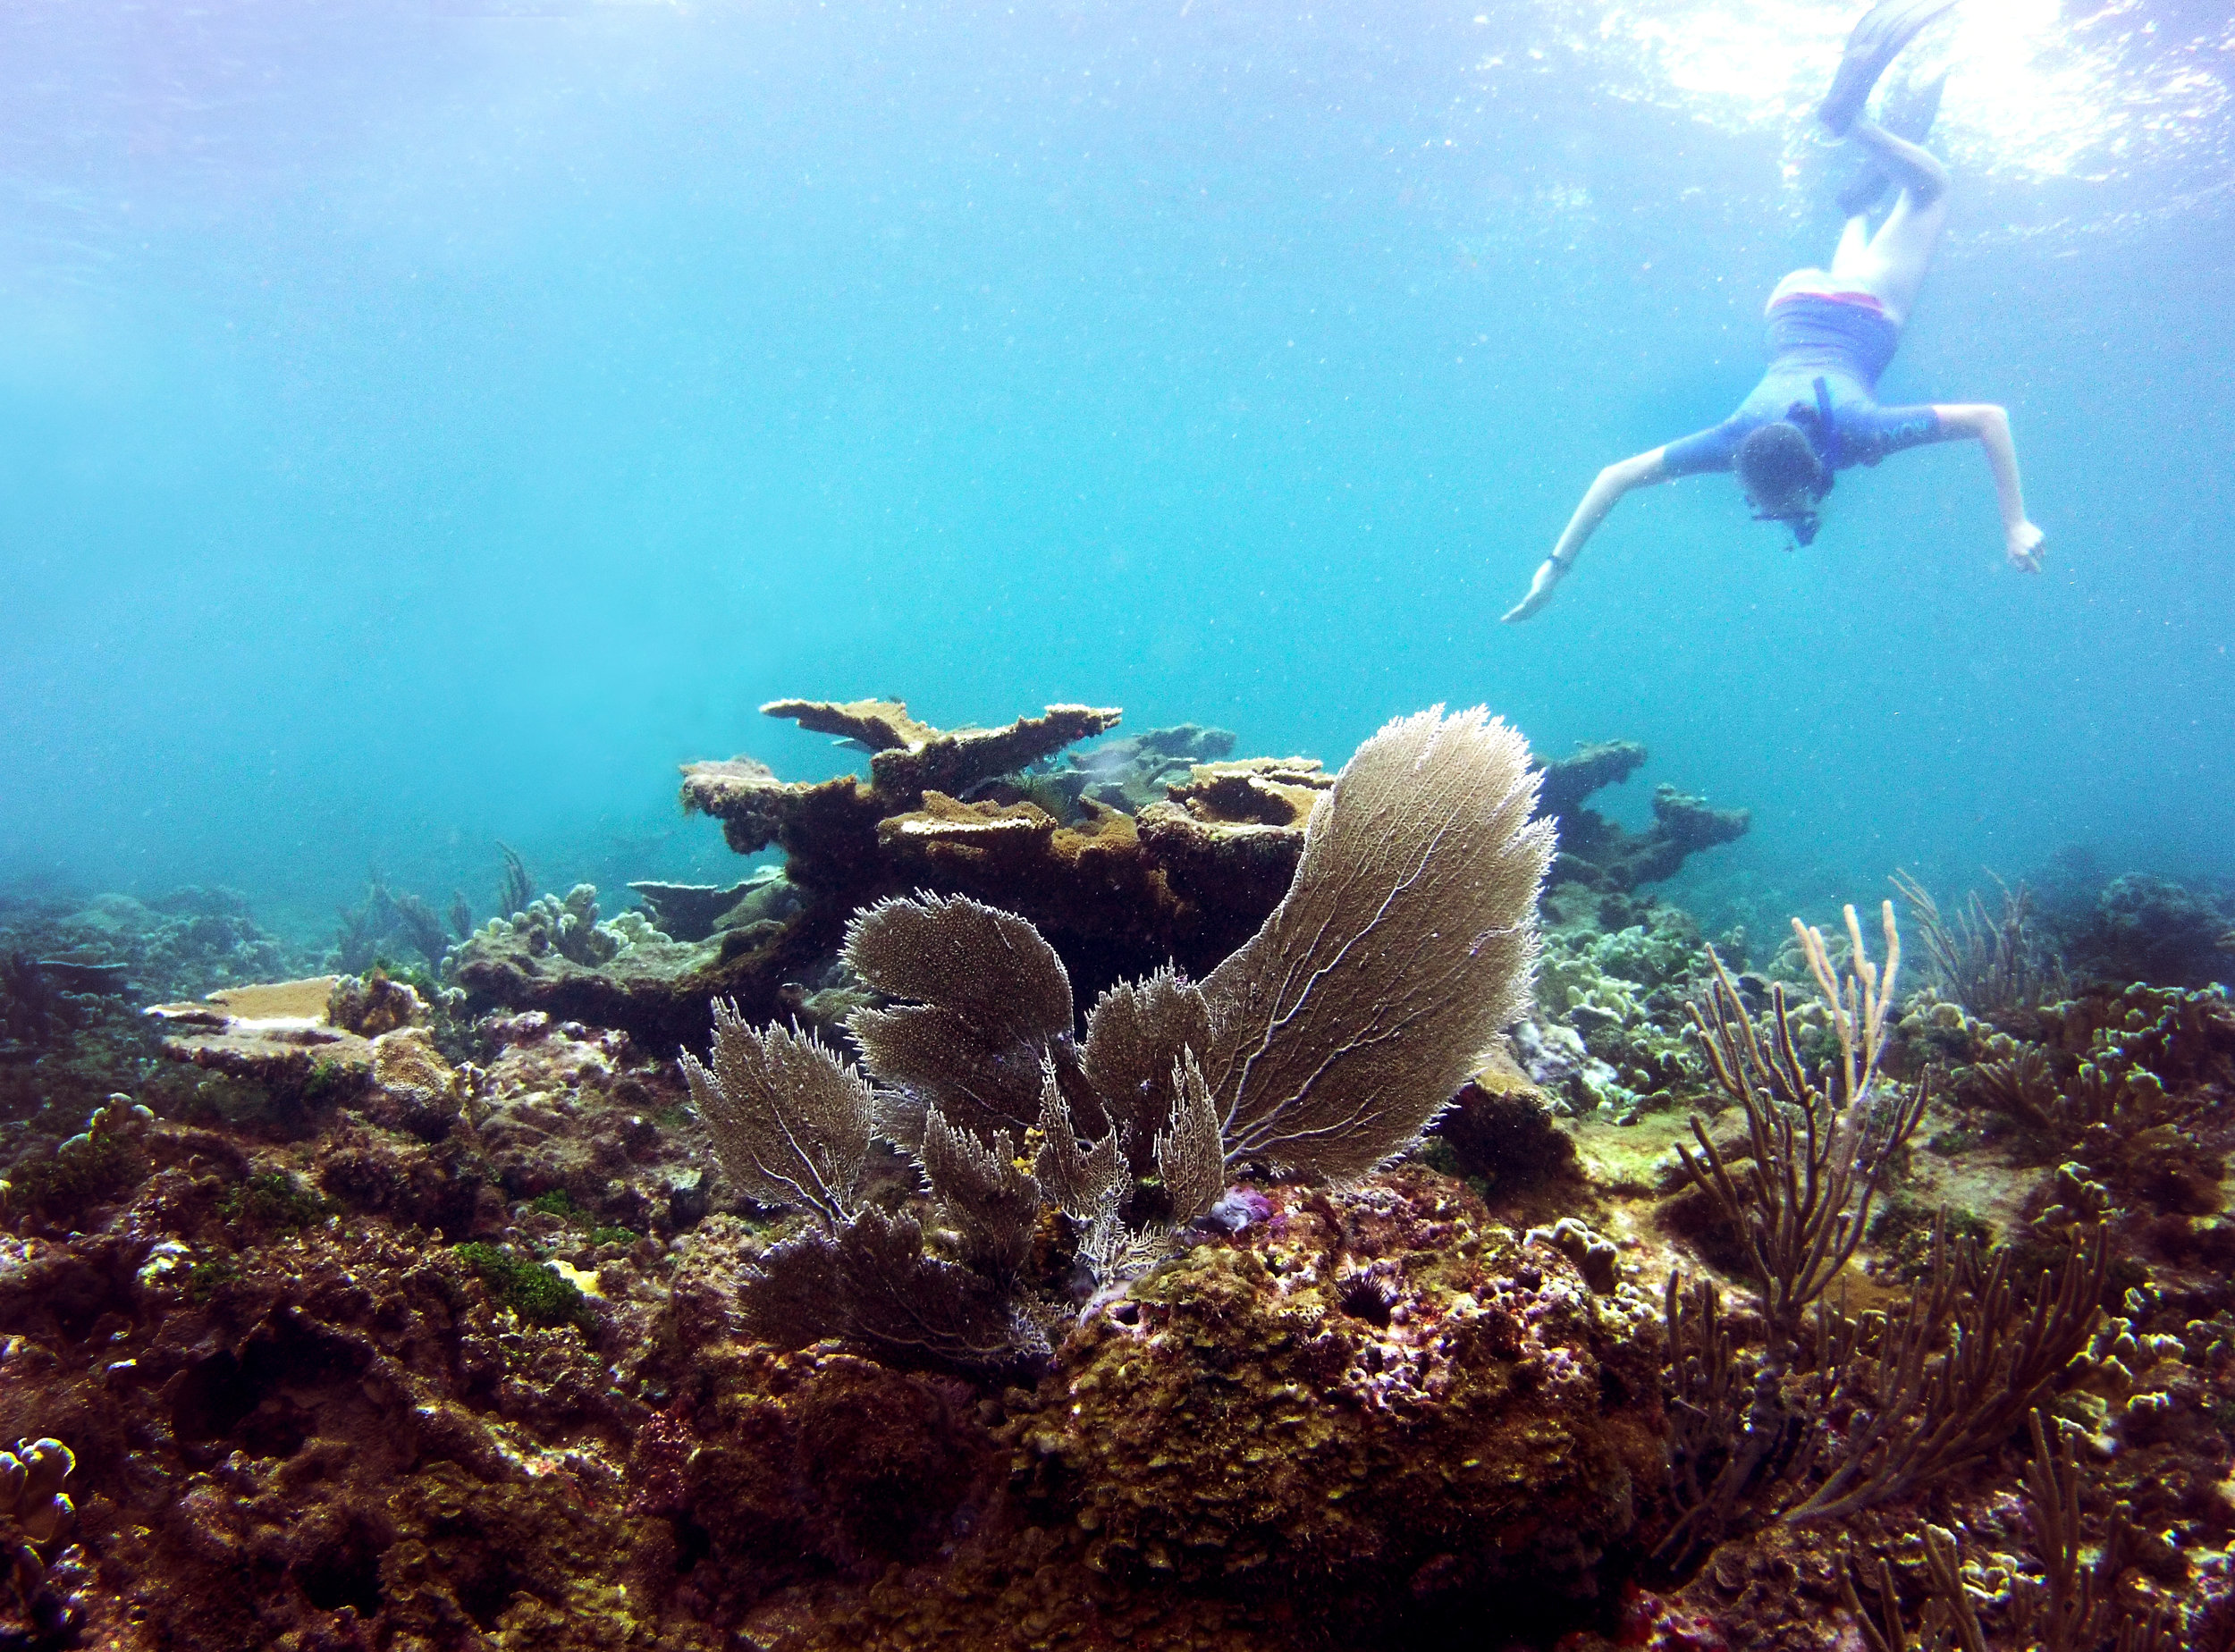 A snorkeler dives down to get a better view of the reef.